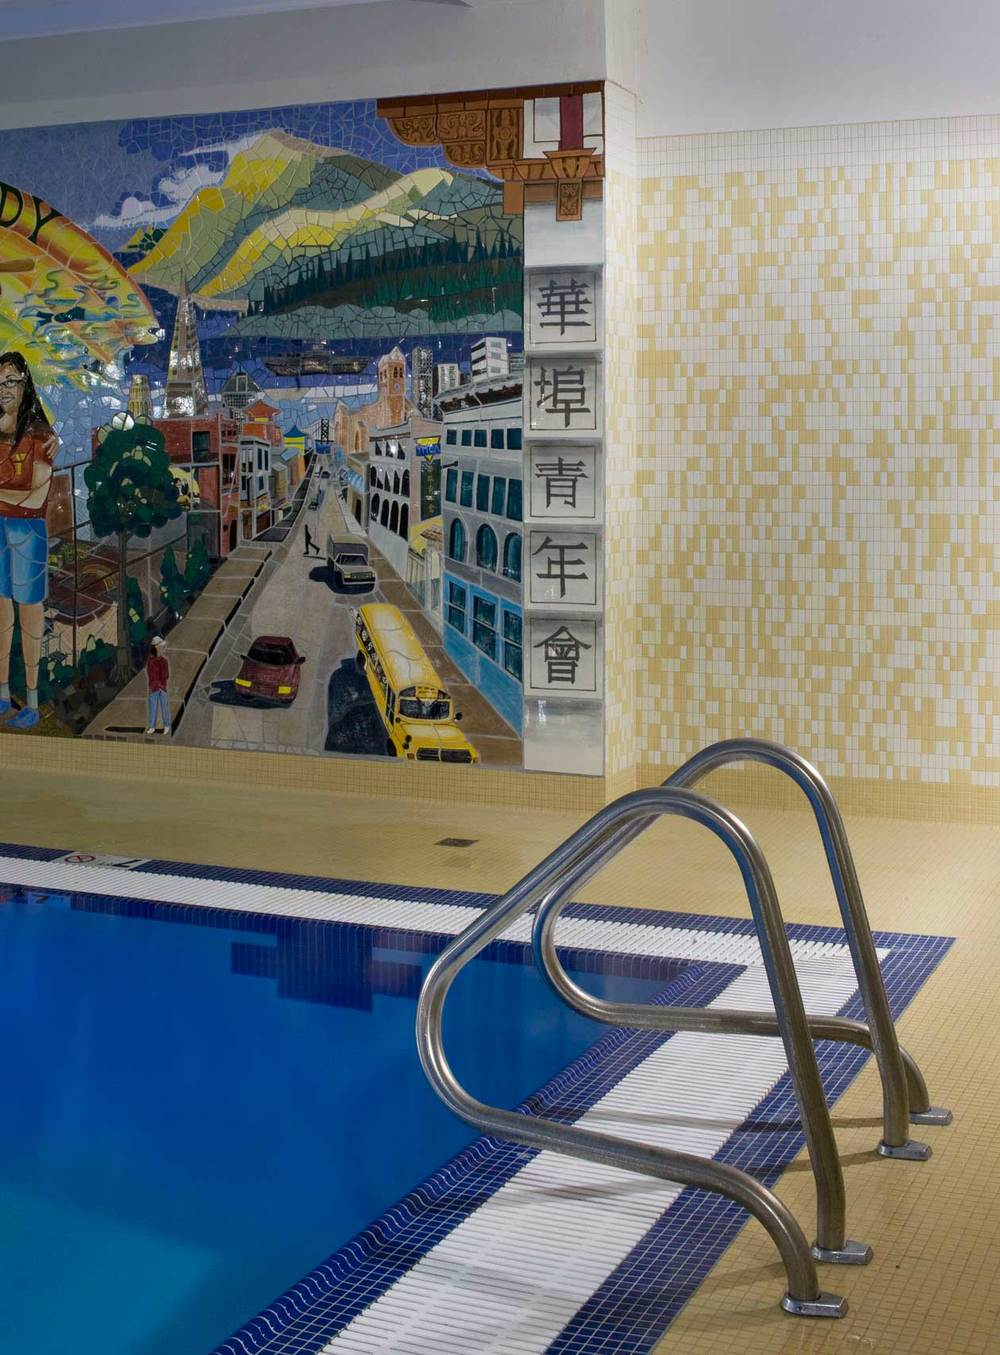 Community Mural and Pool